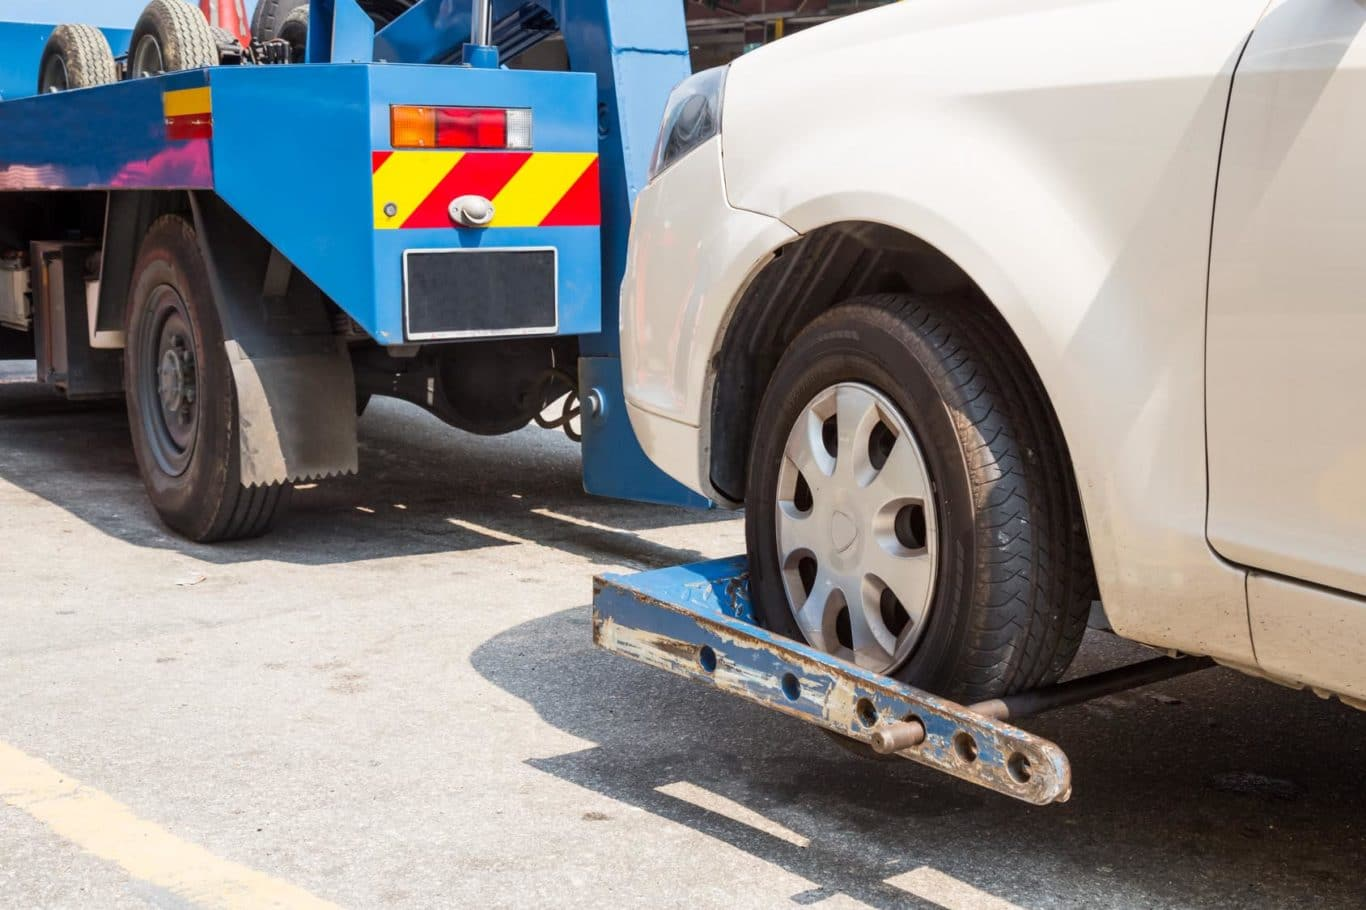 Delgany expert Car Towing services